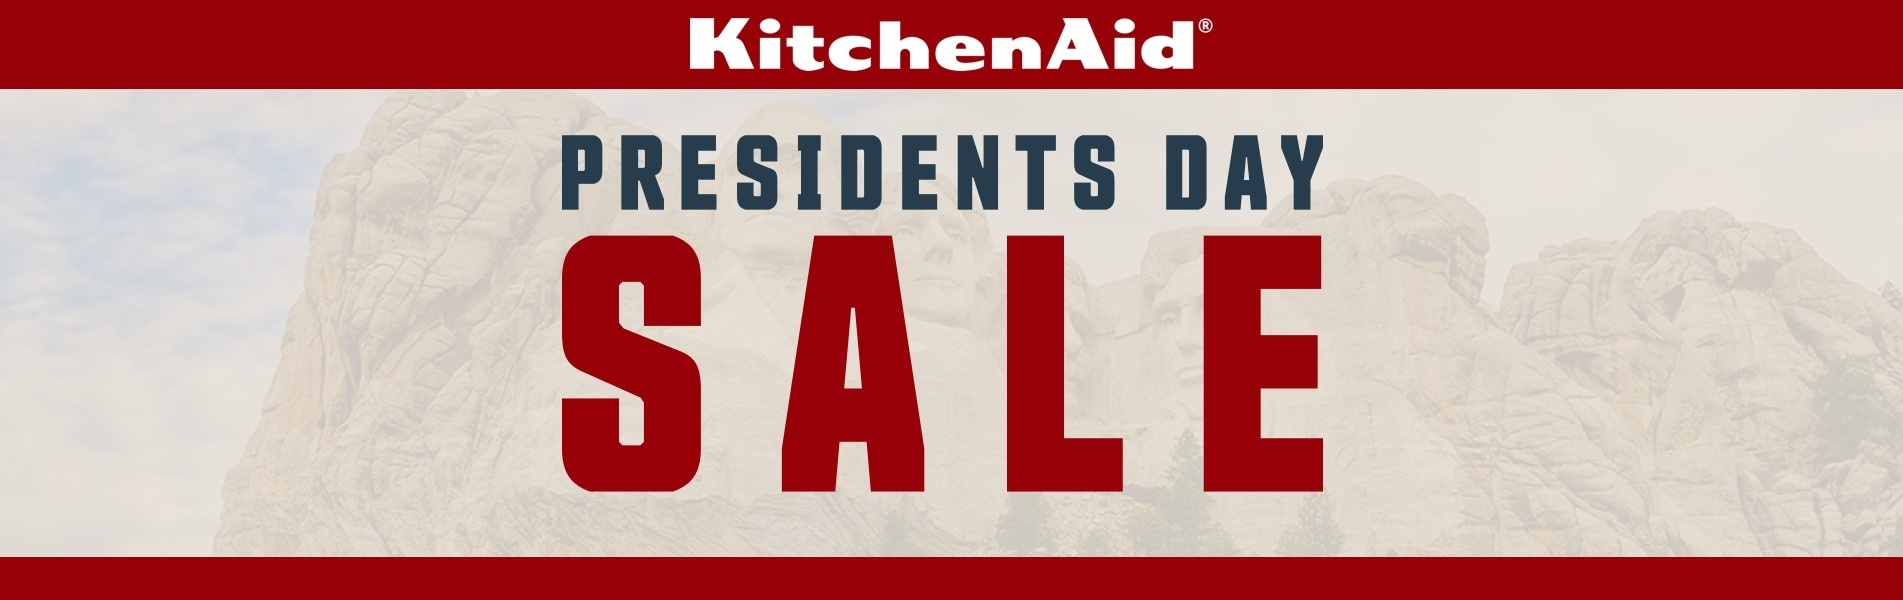 KitchenAid Presidents Day